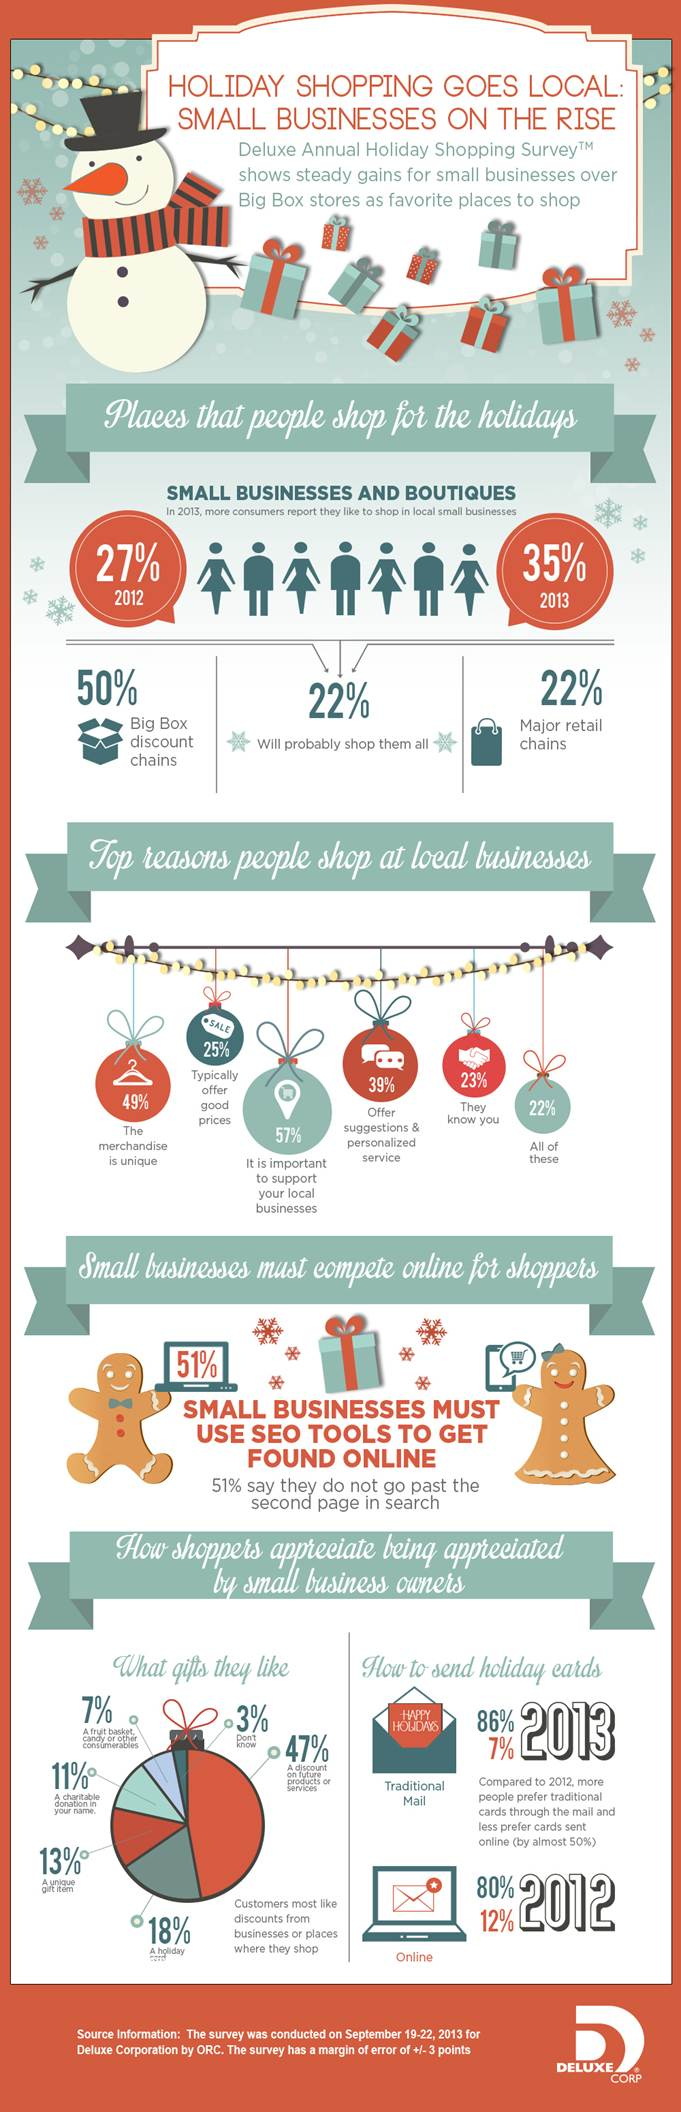 Small Business Online Holiday Statistics